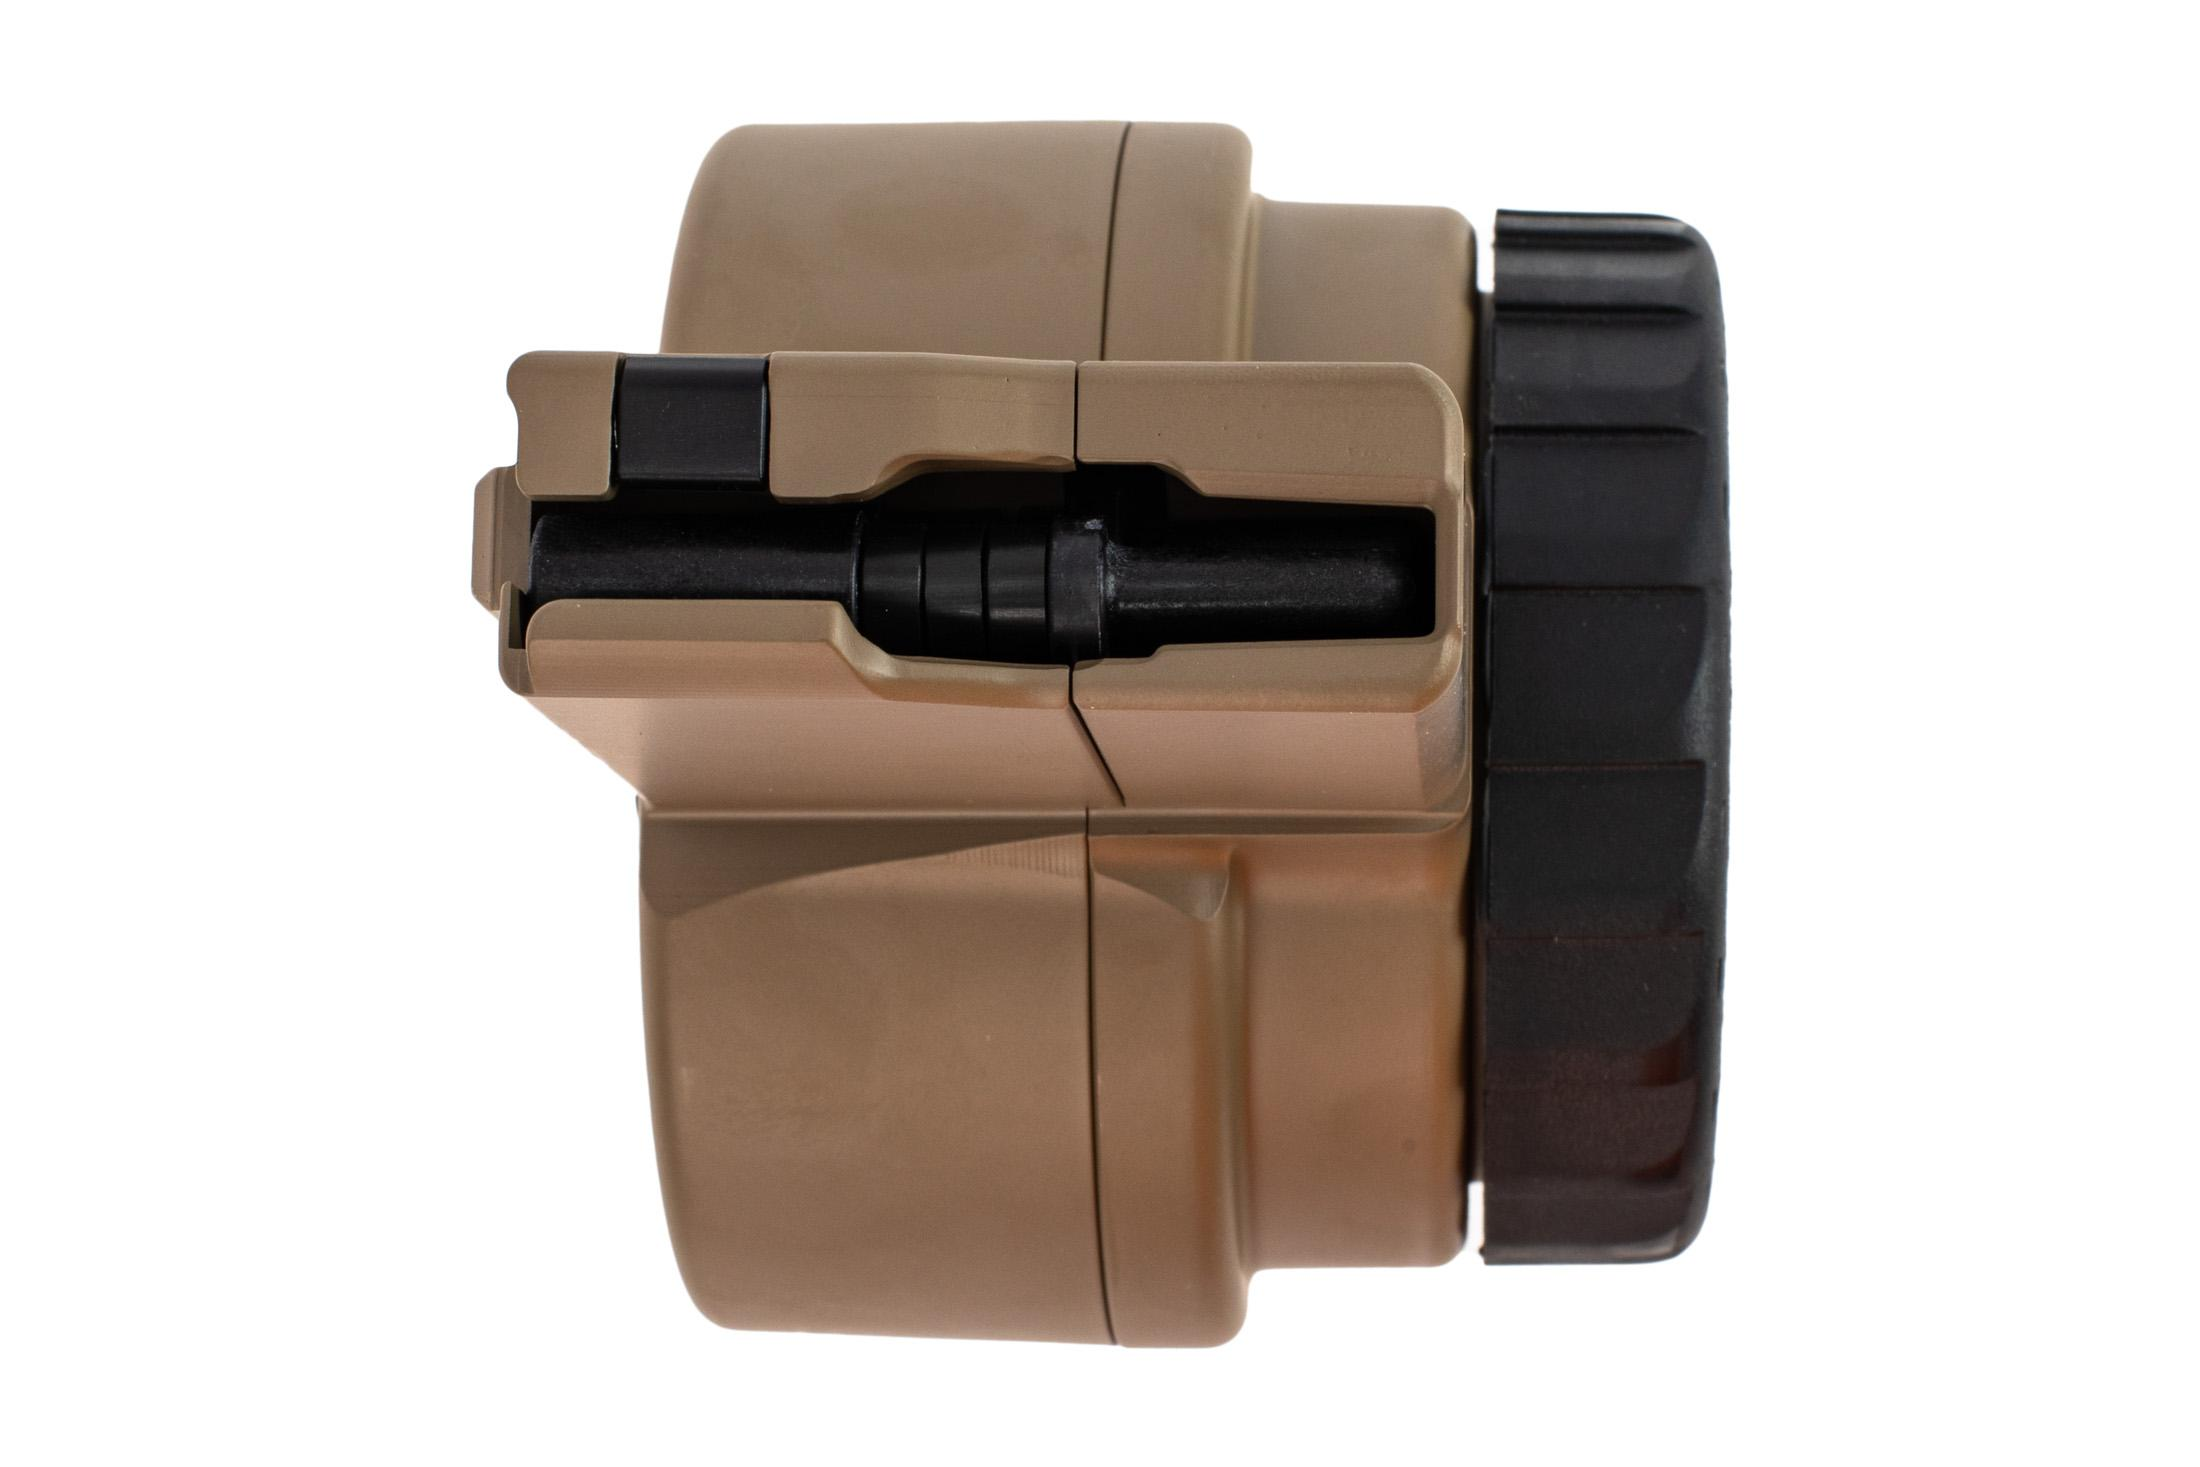 X Products 50 round FDE AR-15 drum magazine has a compact reliable design for 5.56 nato